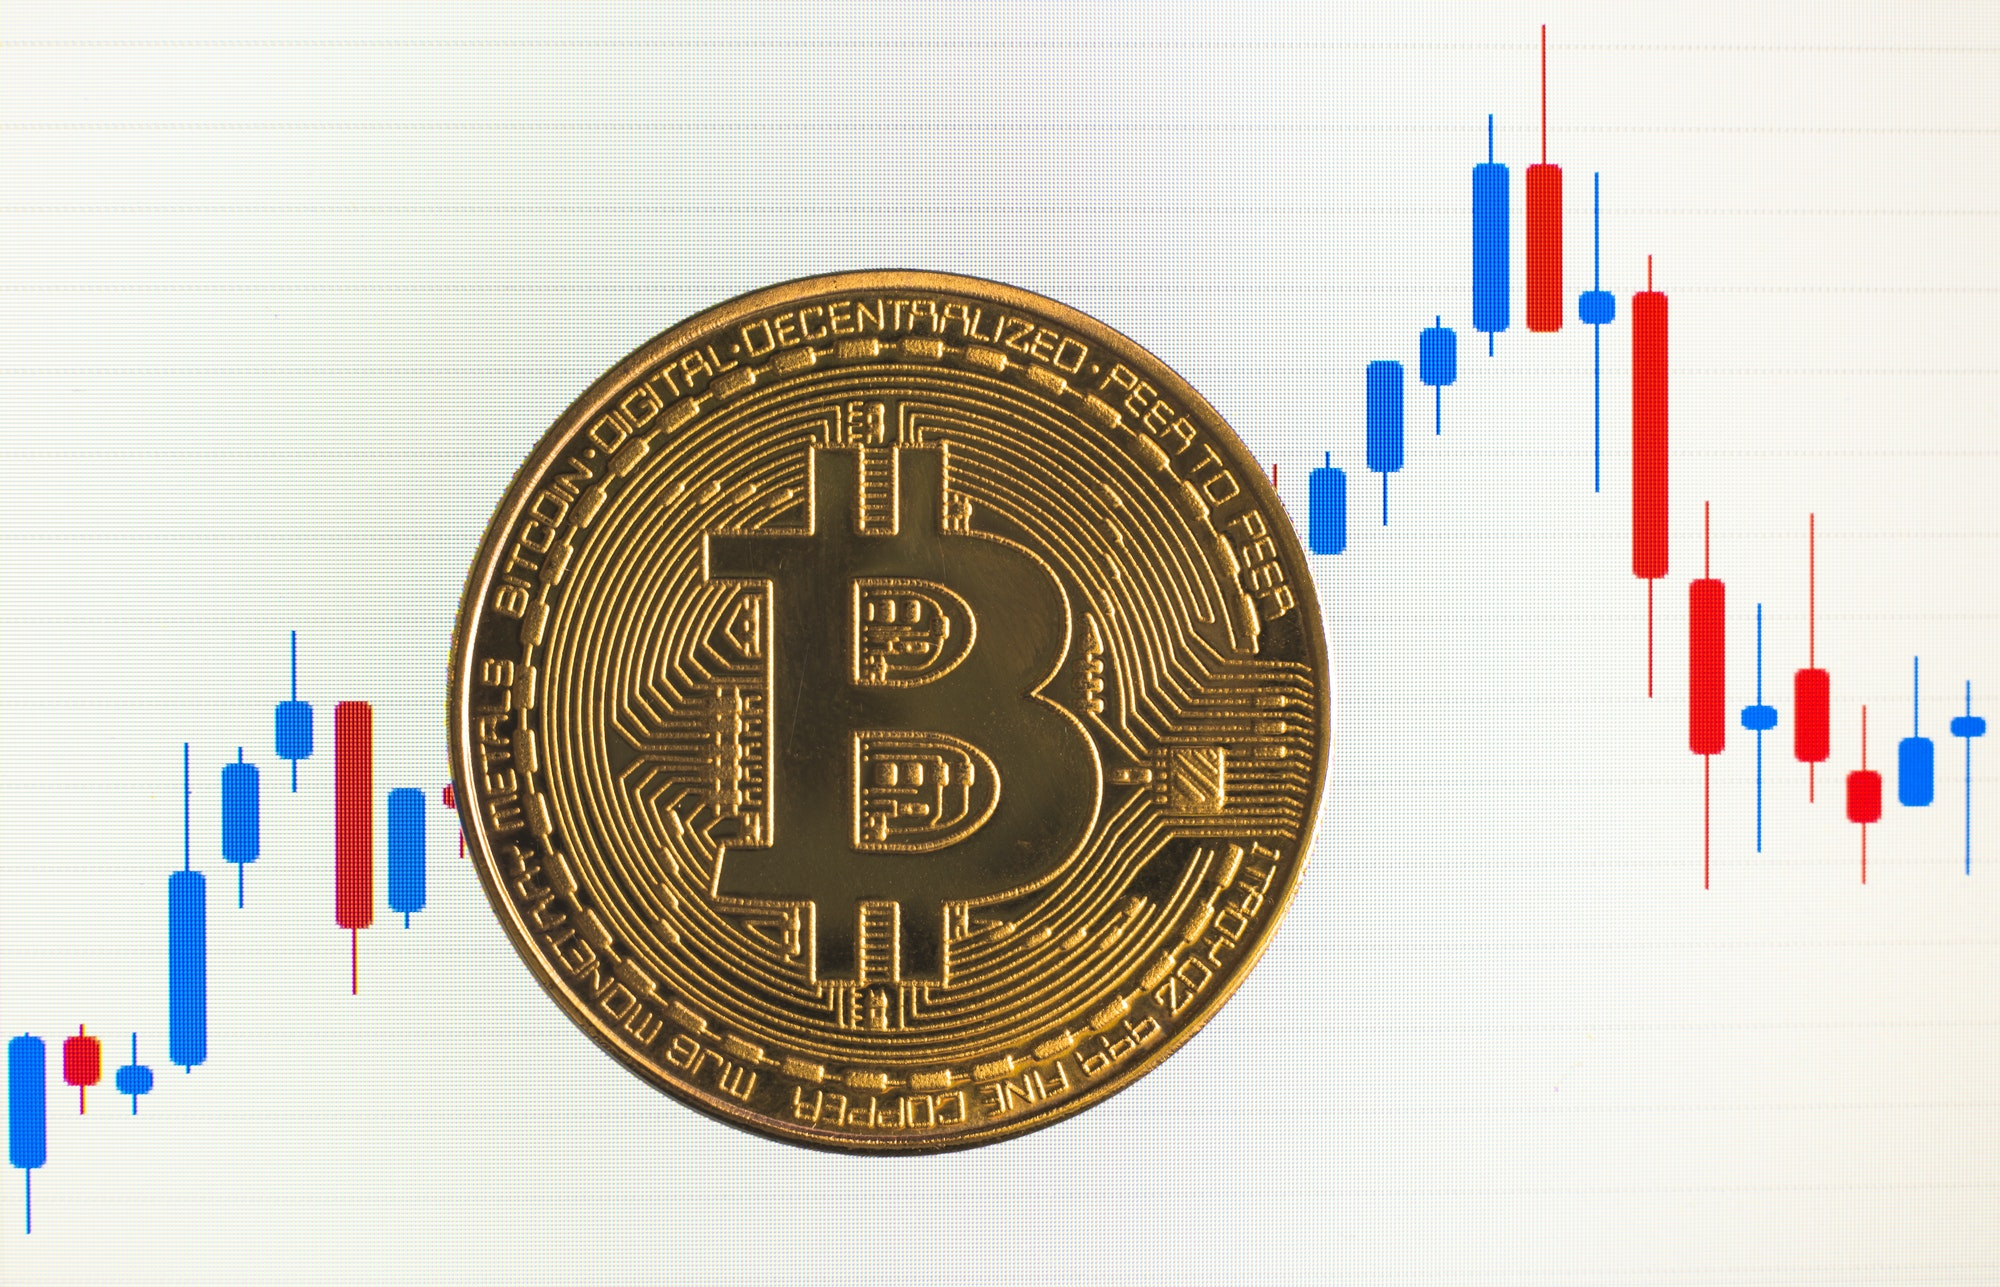 Bitcoin. Physical bit coin. Digital currency. Cryptocurrency. Golden coin with bitcoin symbol